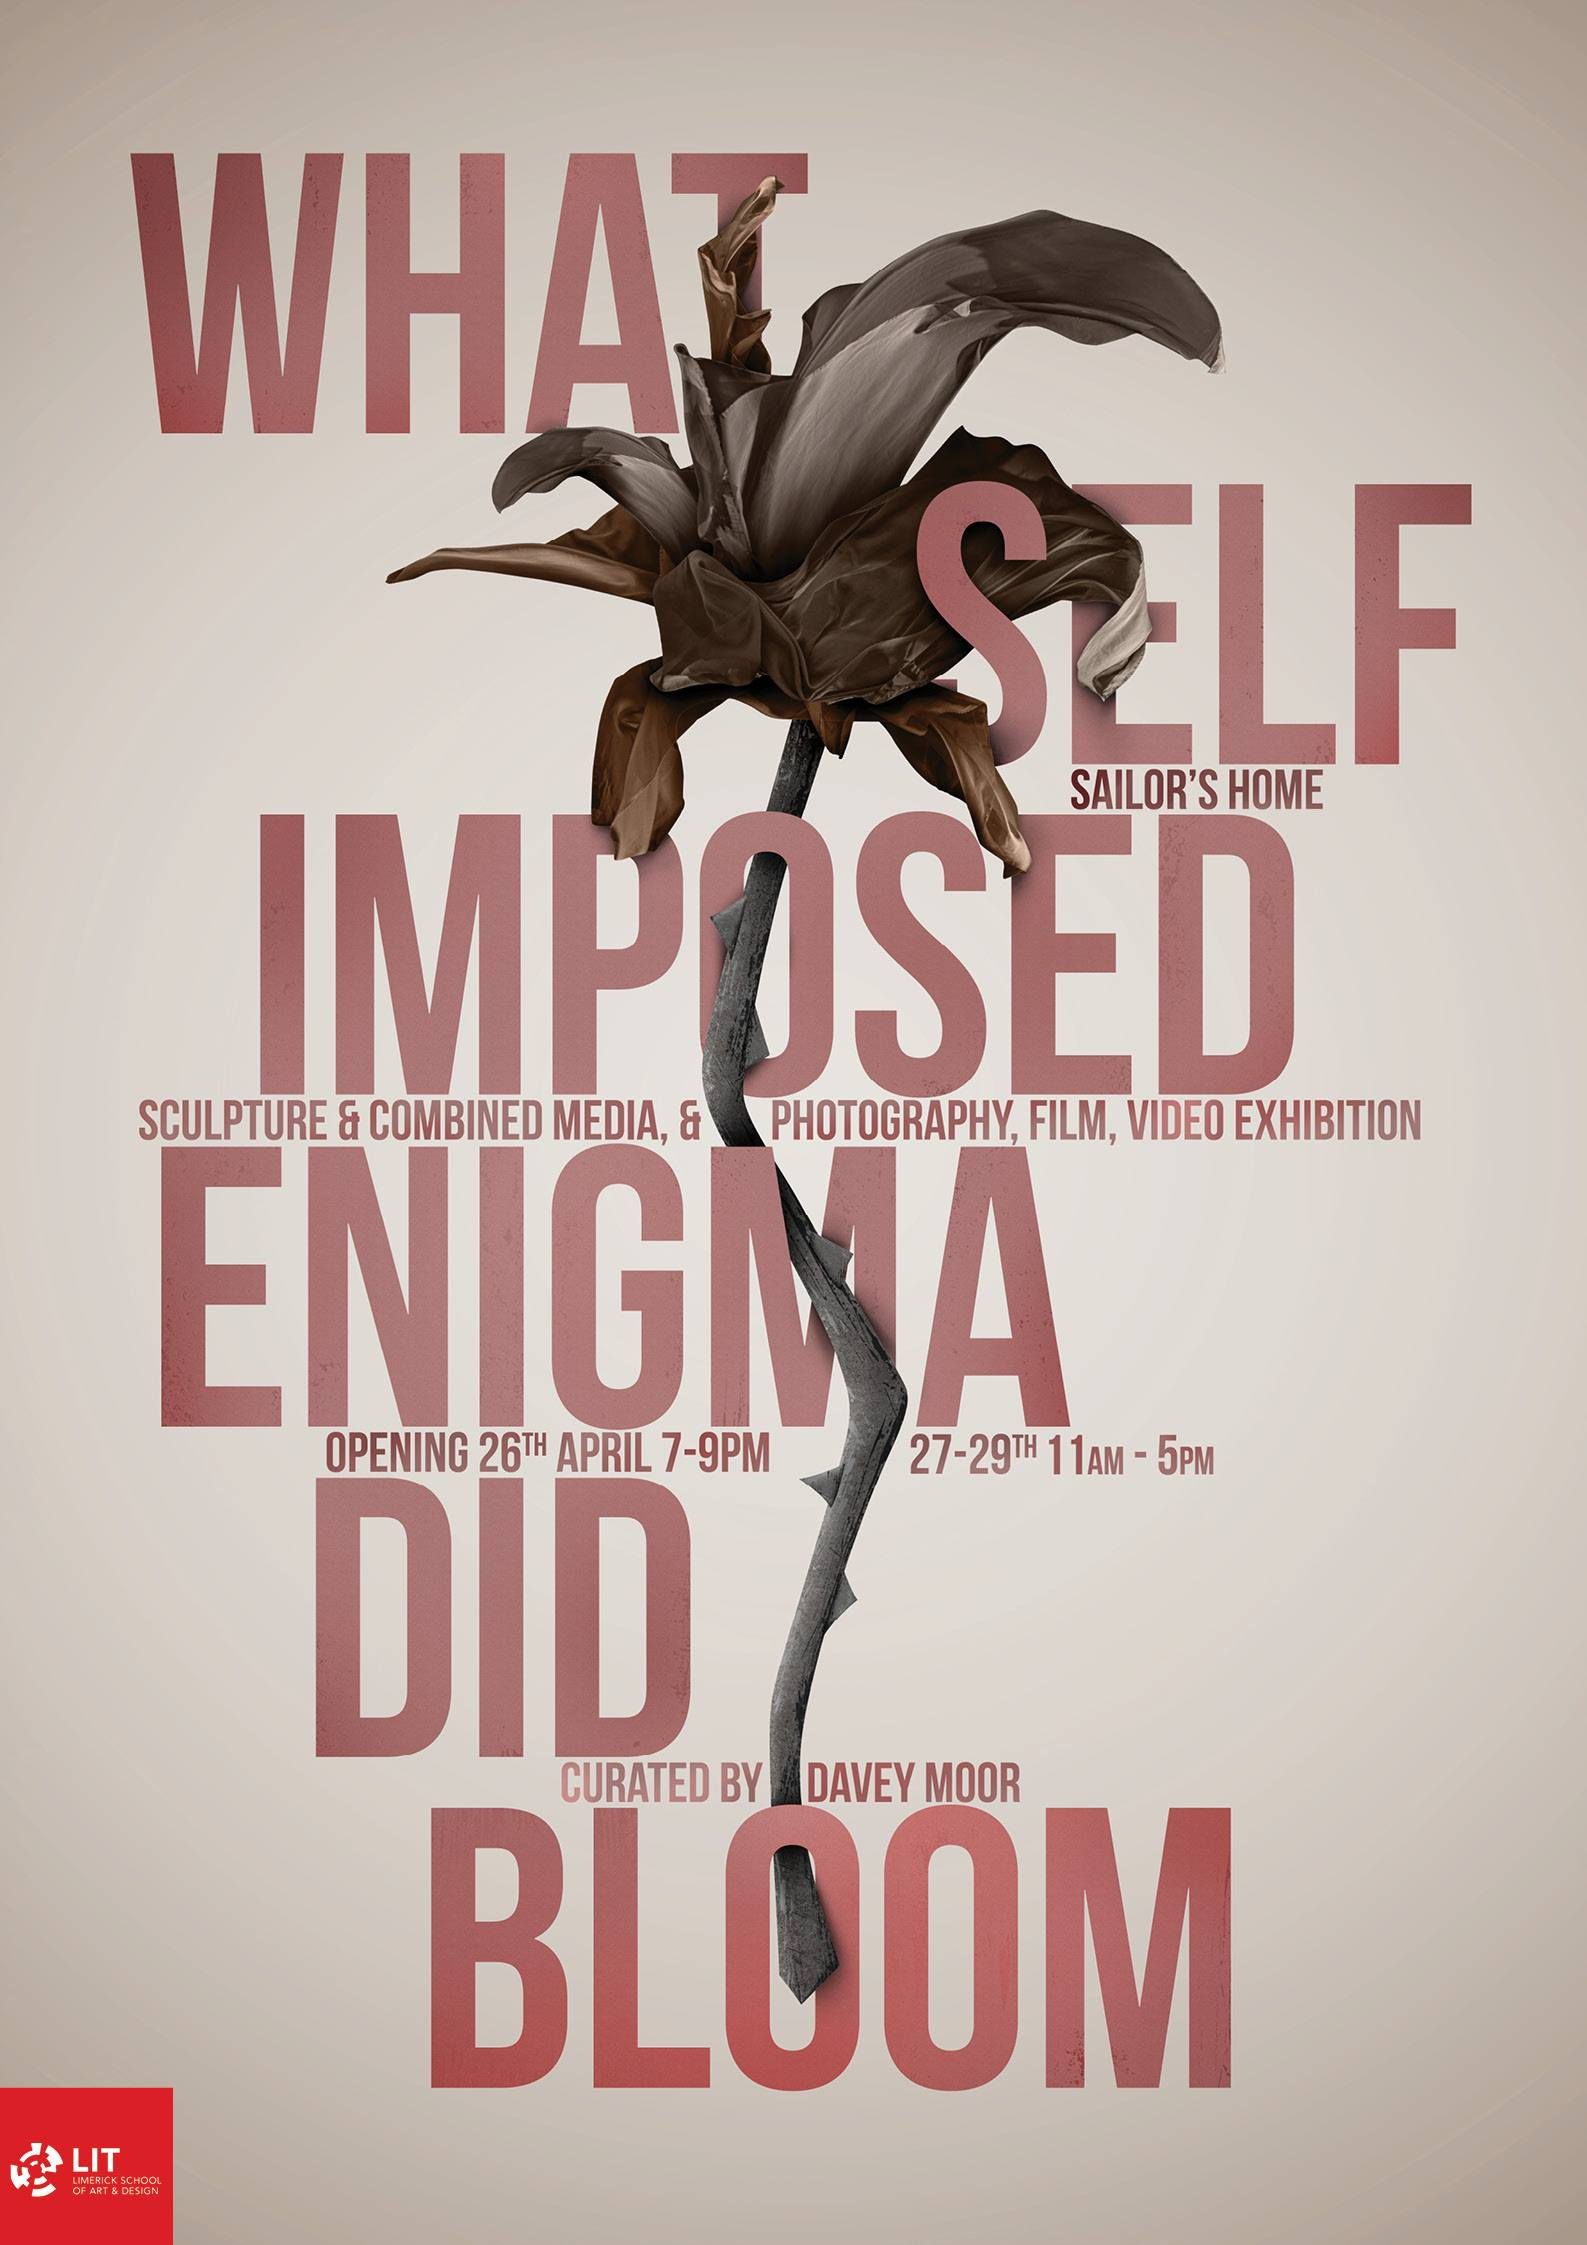 WHAT SELF IMPOSED ENIGMA DID BLOOM